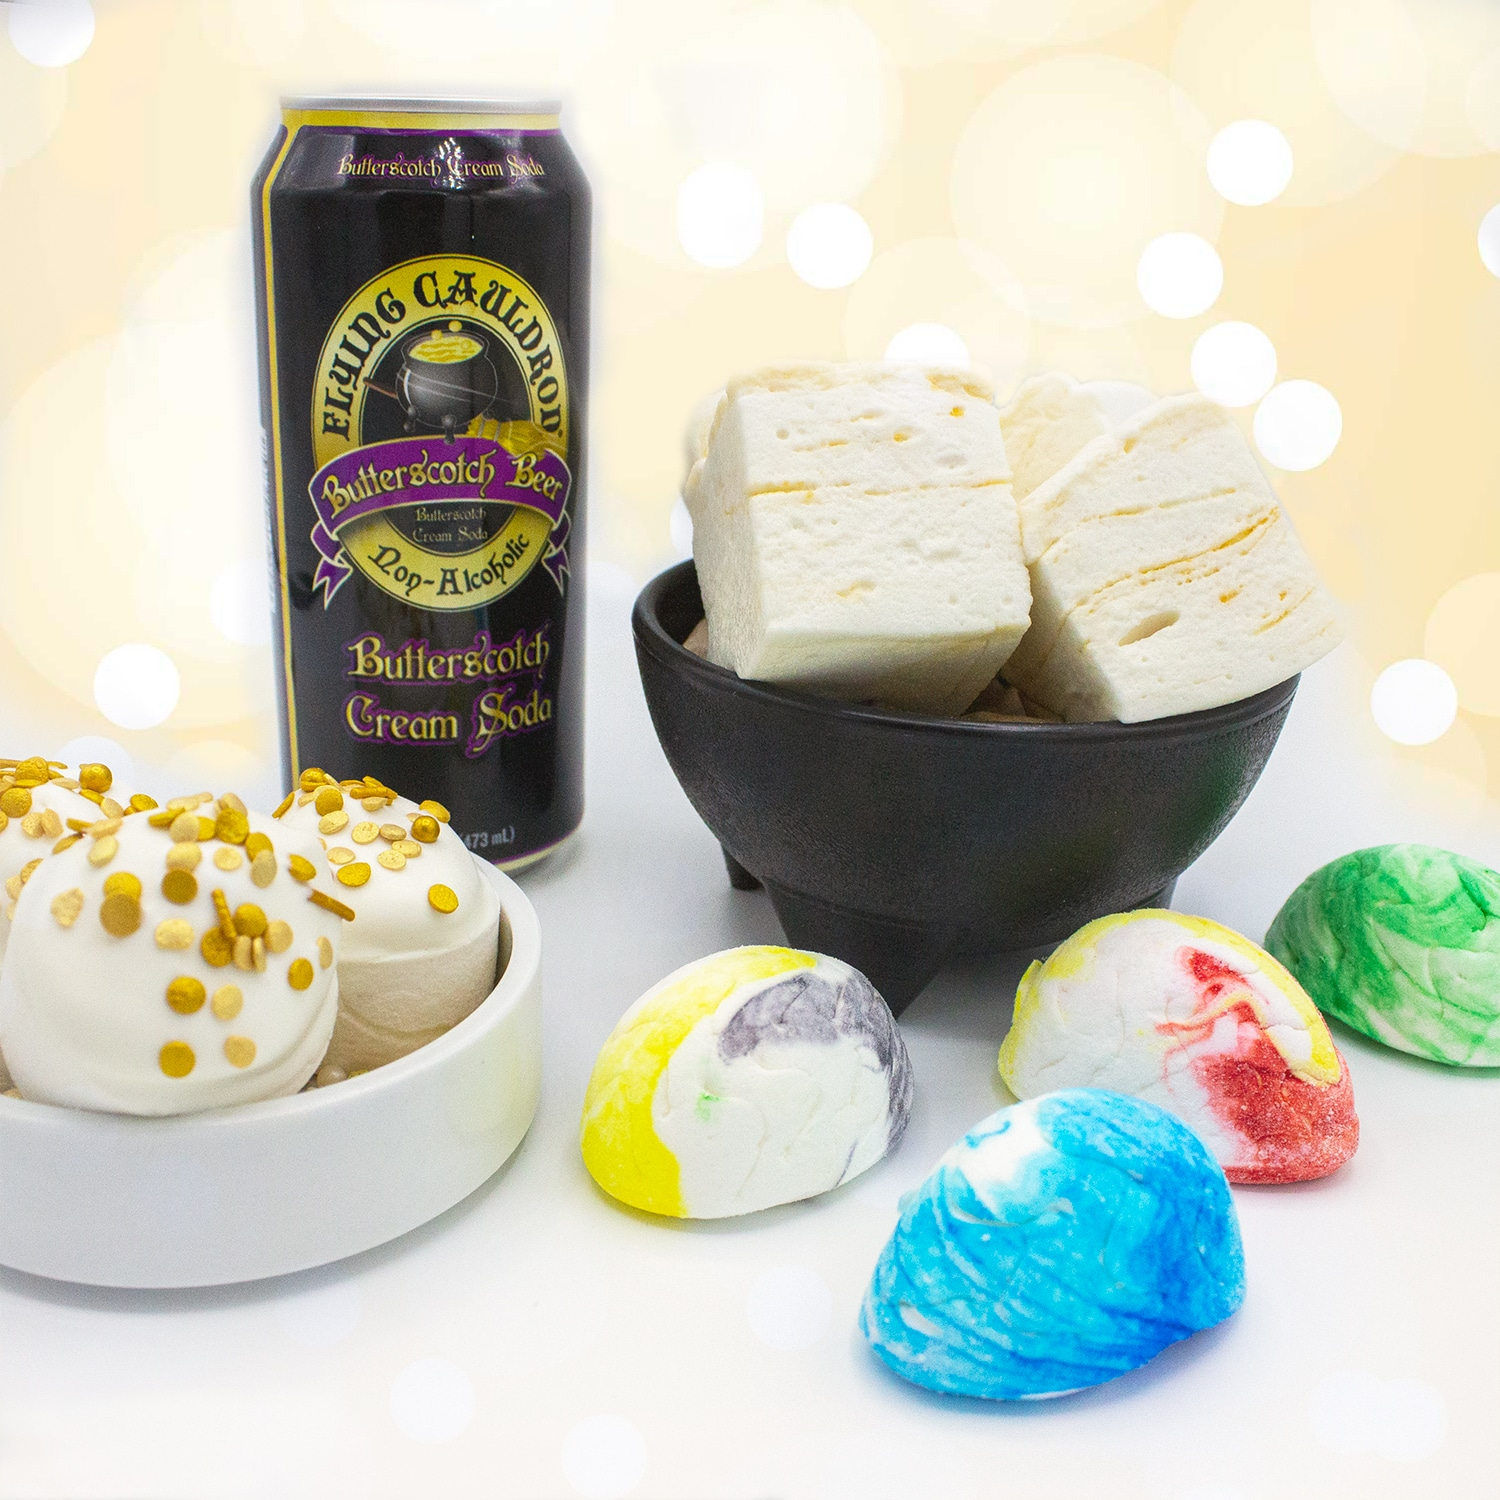 Enter to win a year's supply of Flying Cauldron Butterscotch Cream Soda and some limited edition Toasted Mallow Treats. Giveaway Image